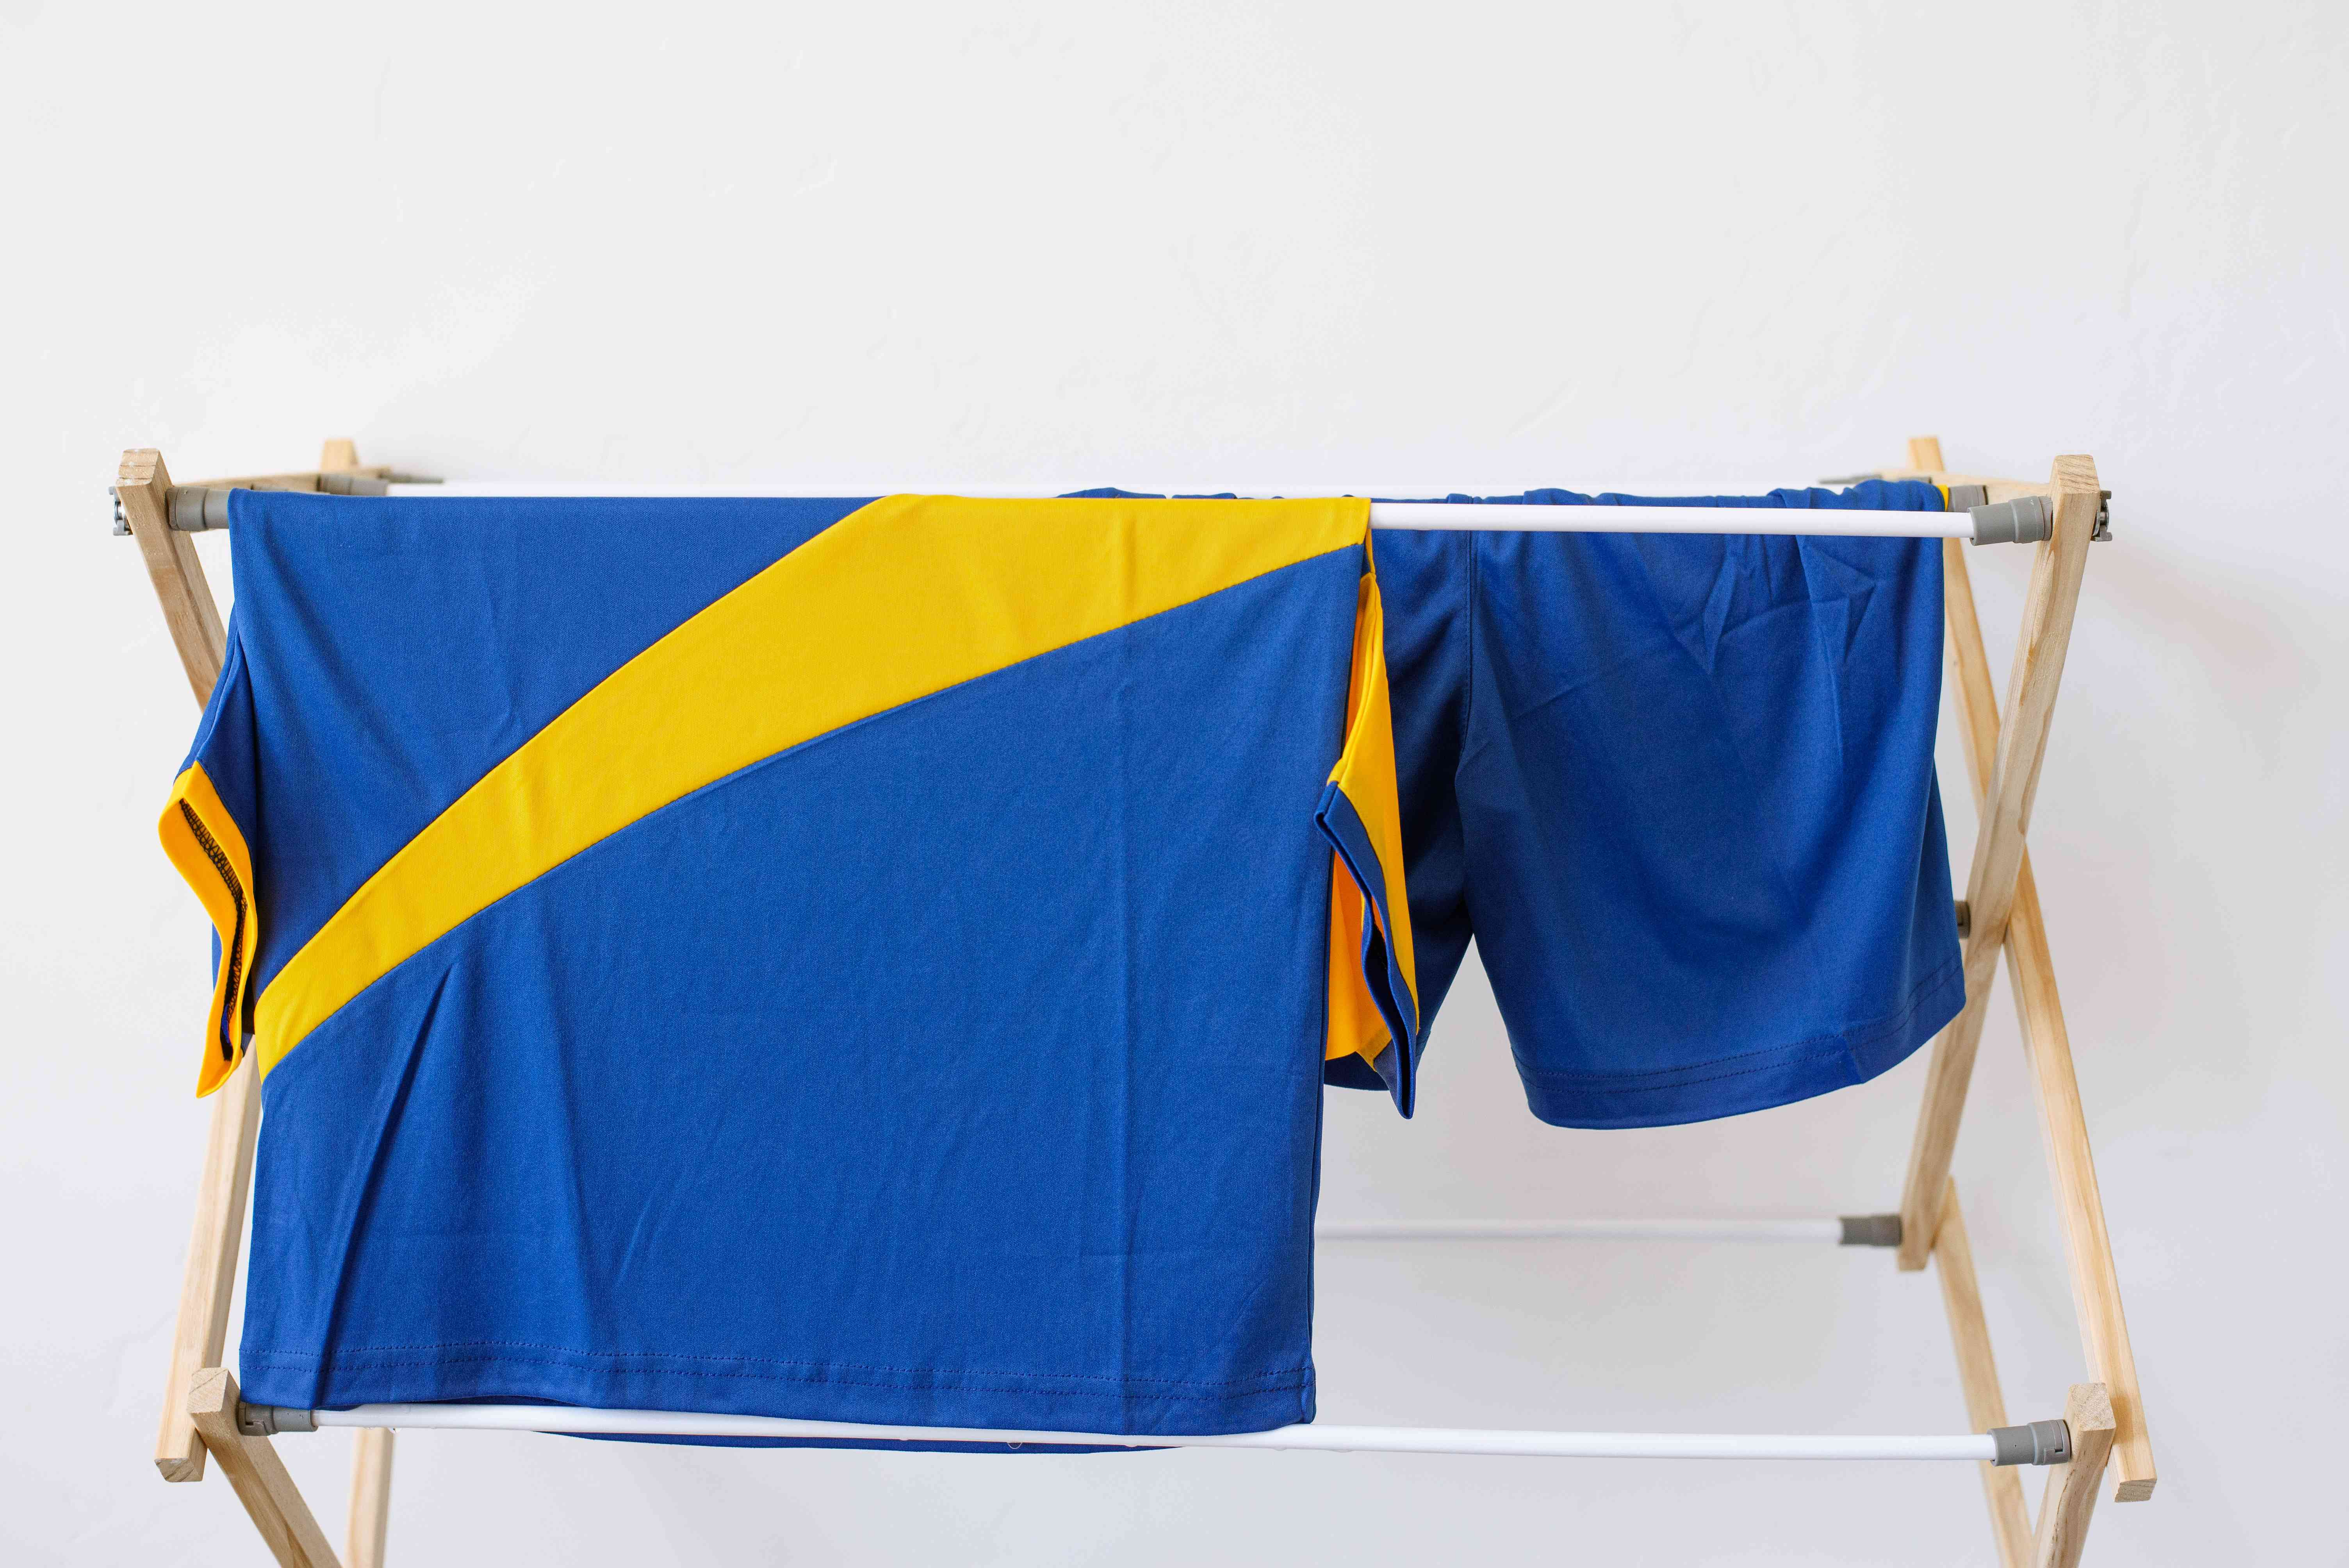 Blue and yellow soccer uniform hanging on drying rack to air dry